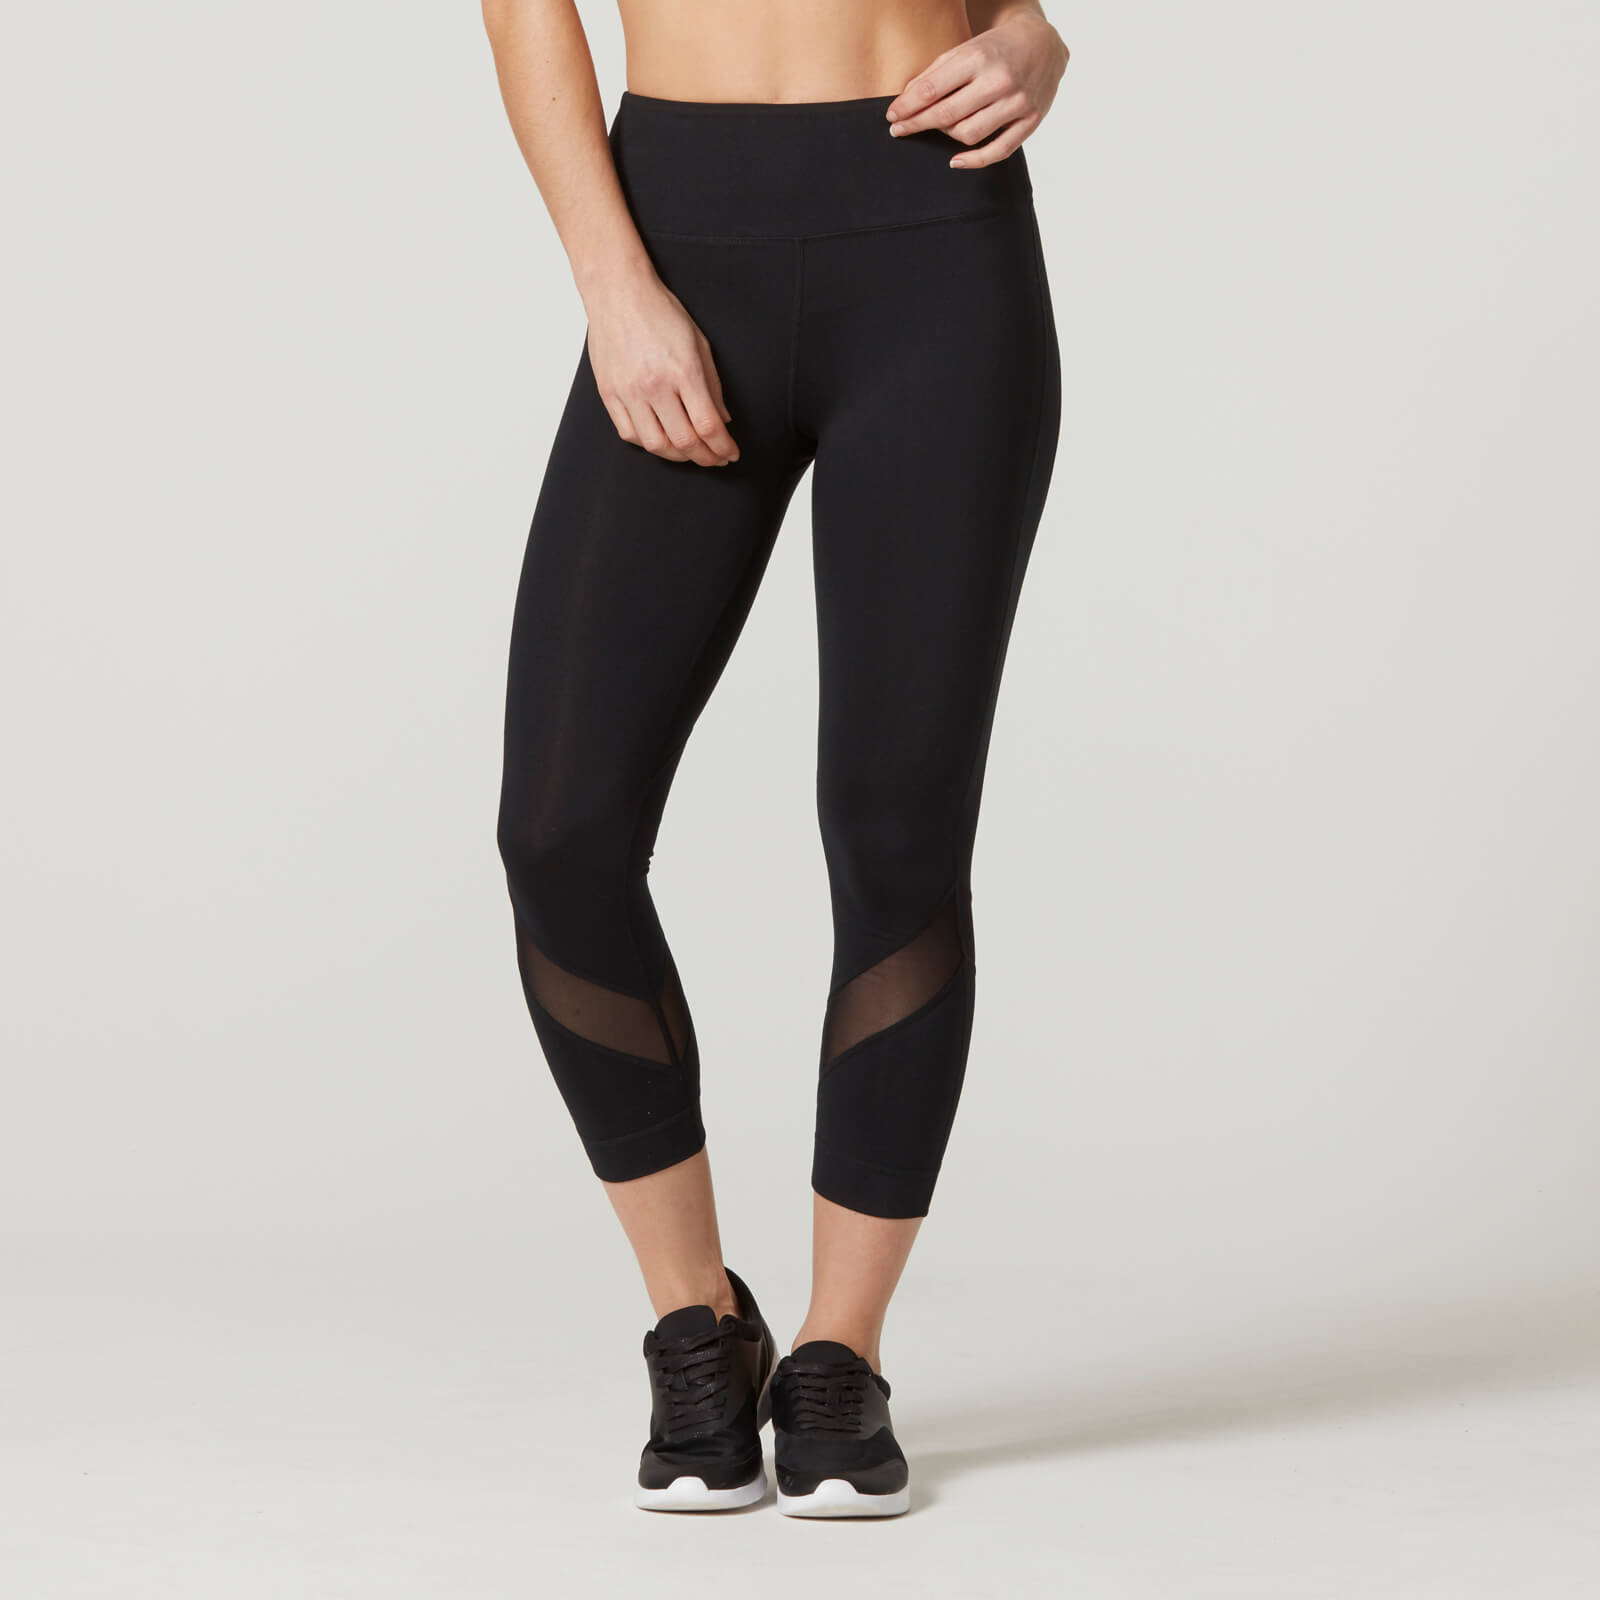 Myprotein Heartbeat Cropped Mesh Leggings - Black - XS